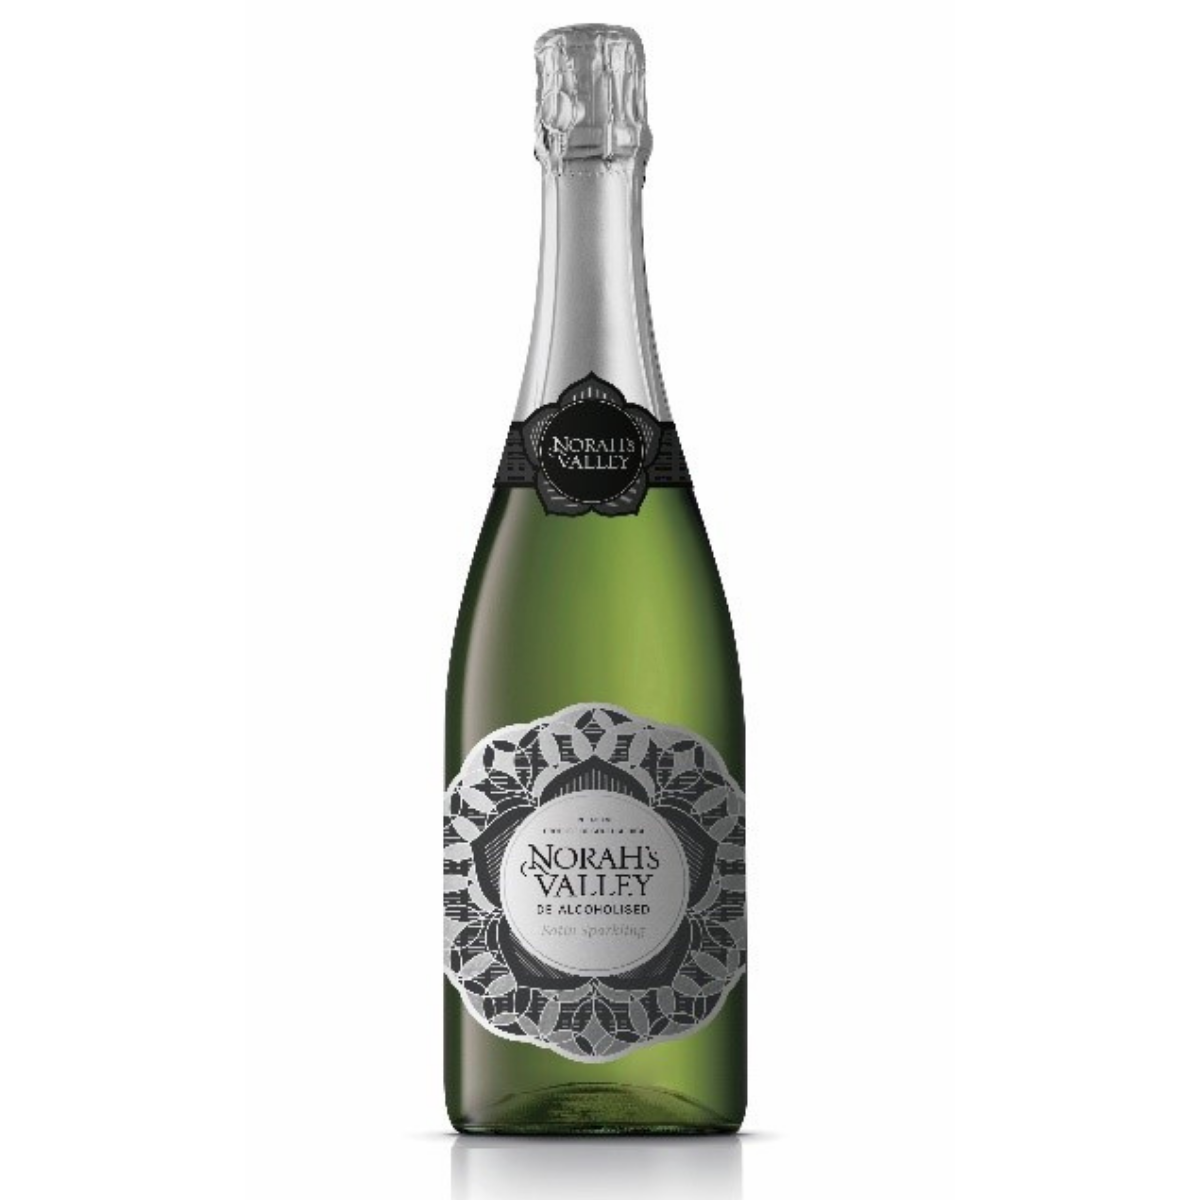 Norah's Valley Satin Sparkling White Wine (1 x 750ml)